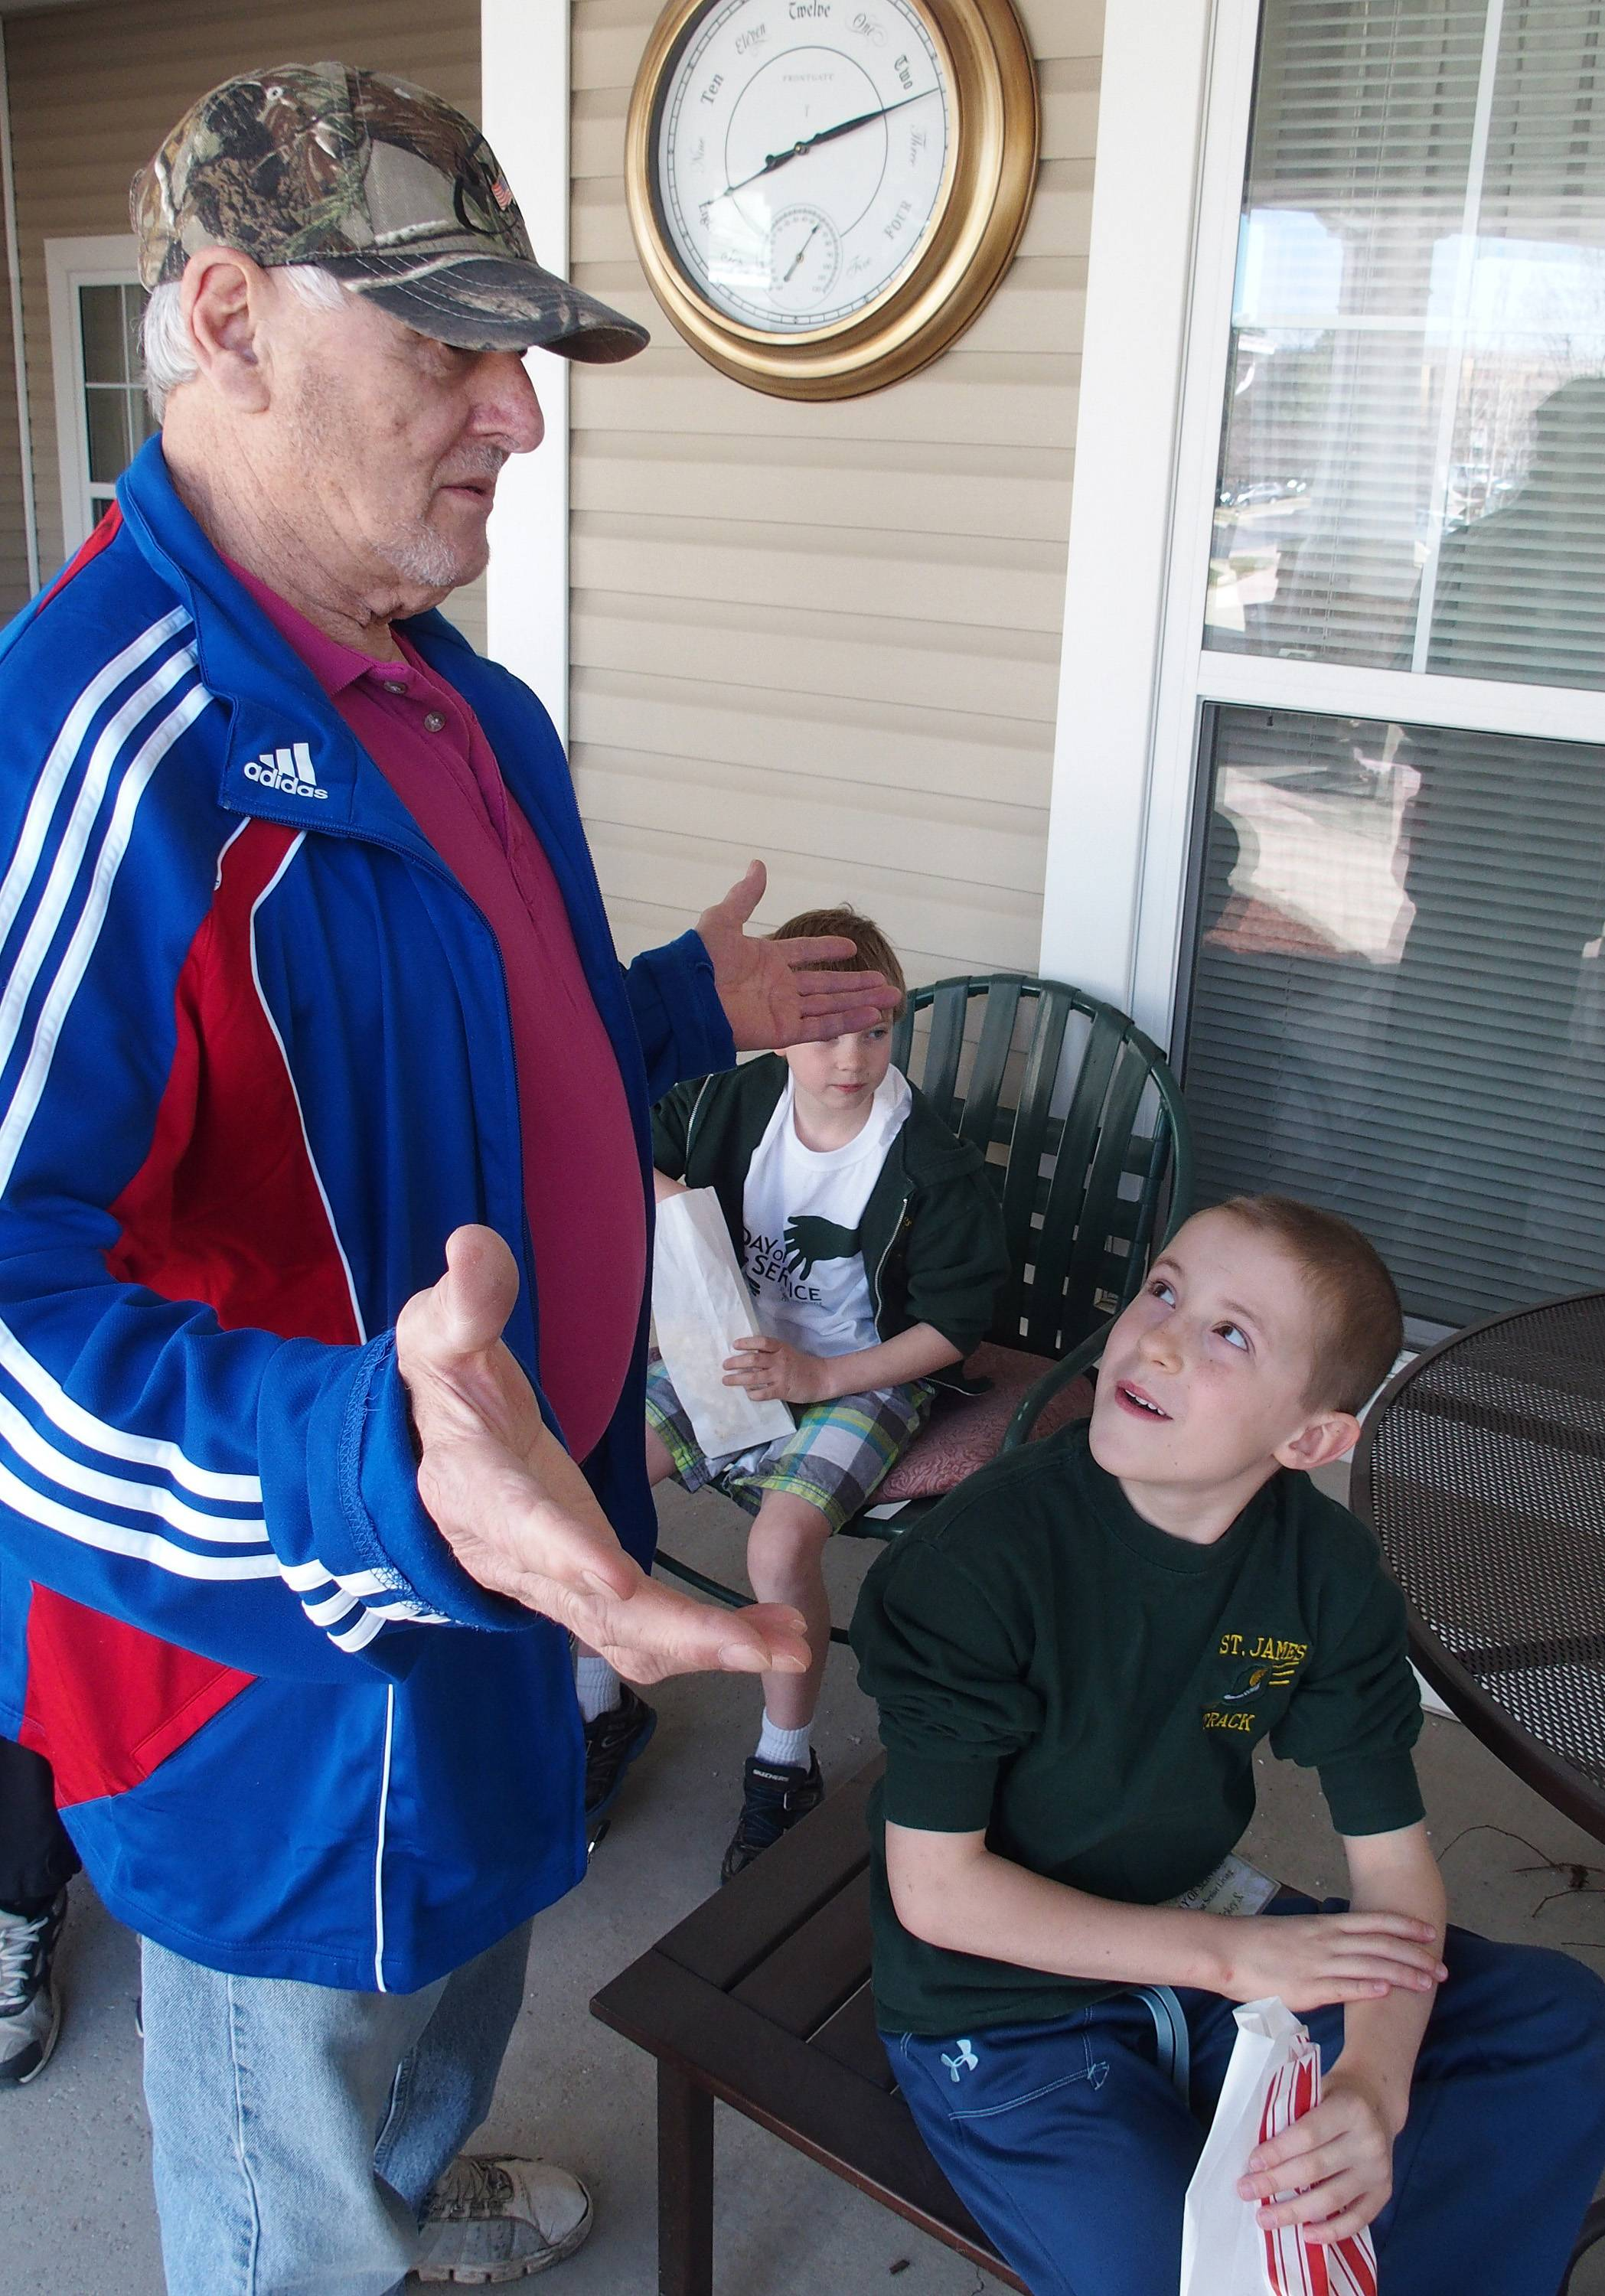 Tony Shurba, a resident at Sunrise Senior Living Center and Brighton Gardens, passes out popcorn and chats with Mickey Schihl, a student from St. James the Apostle School, who was doing work at the center as part of a Day of Service project.